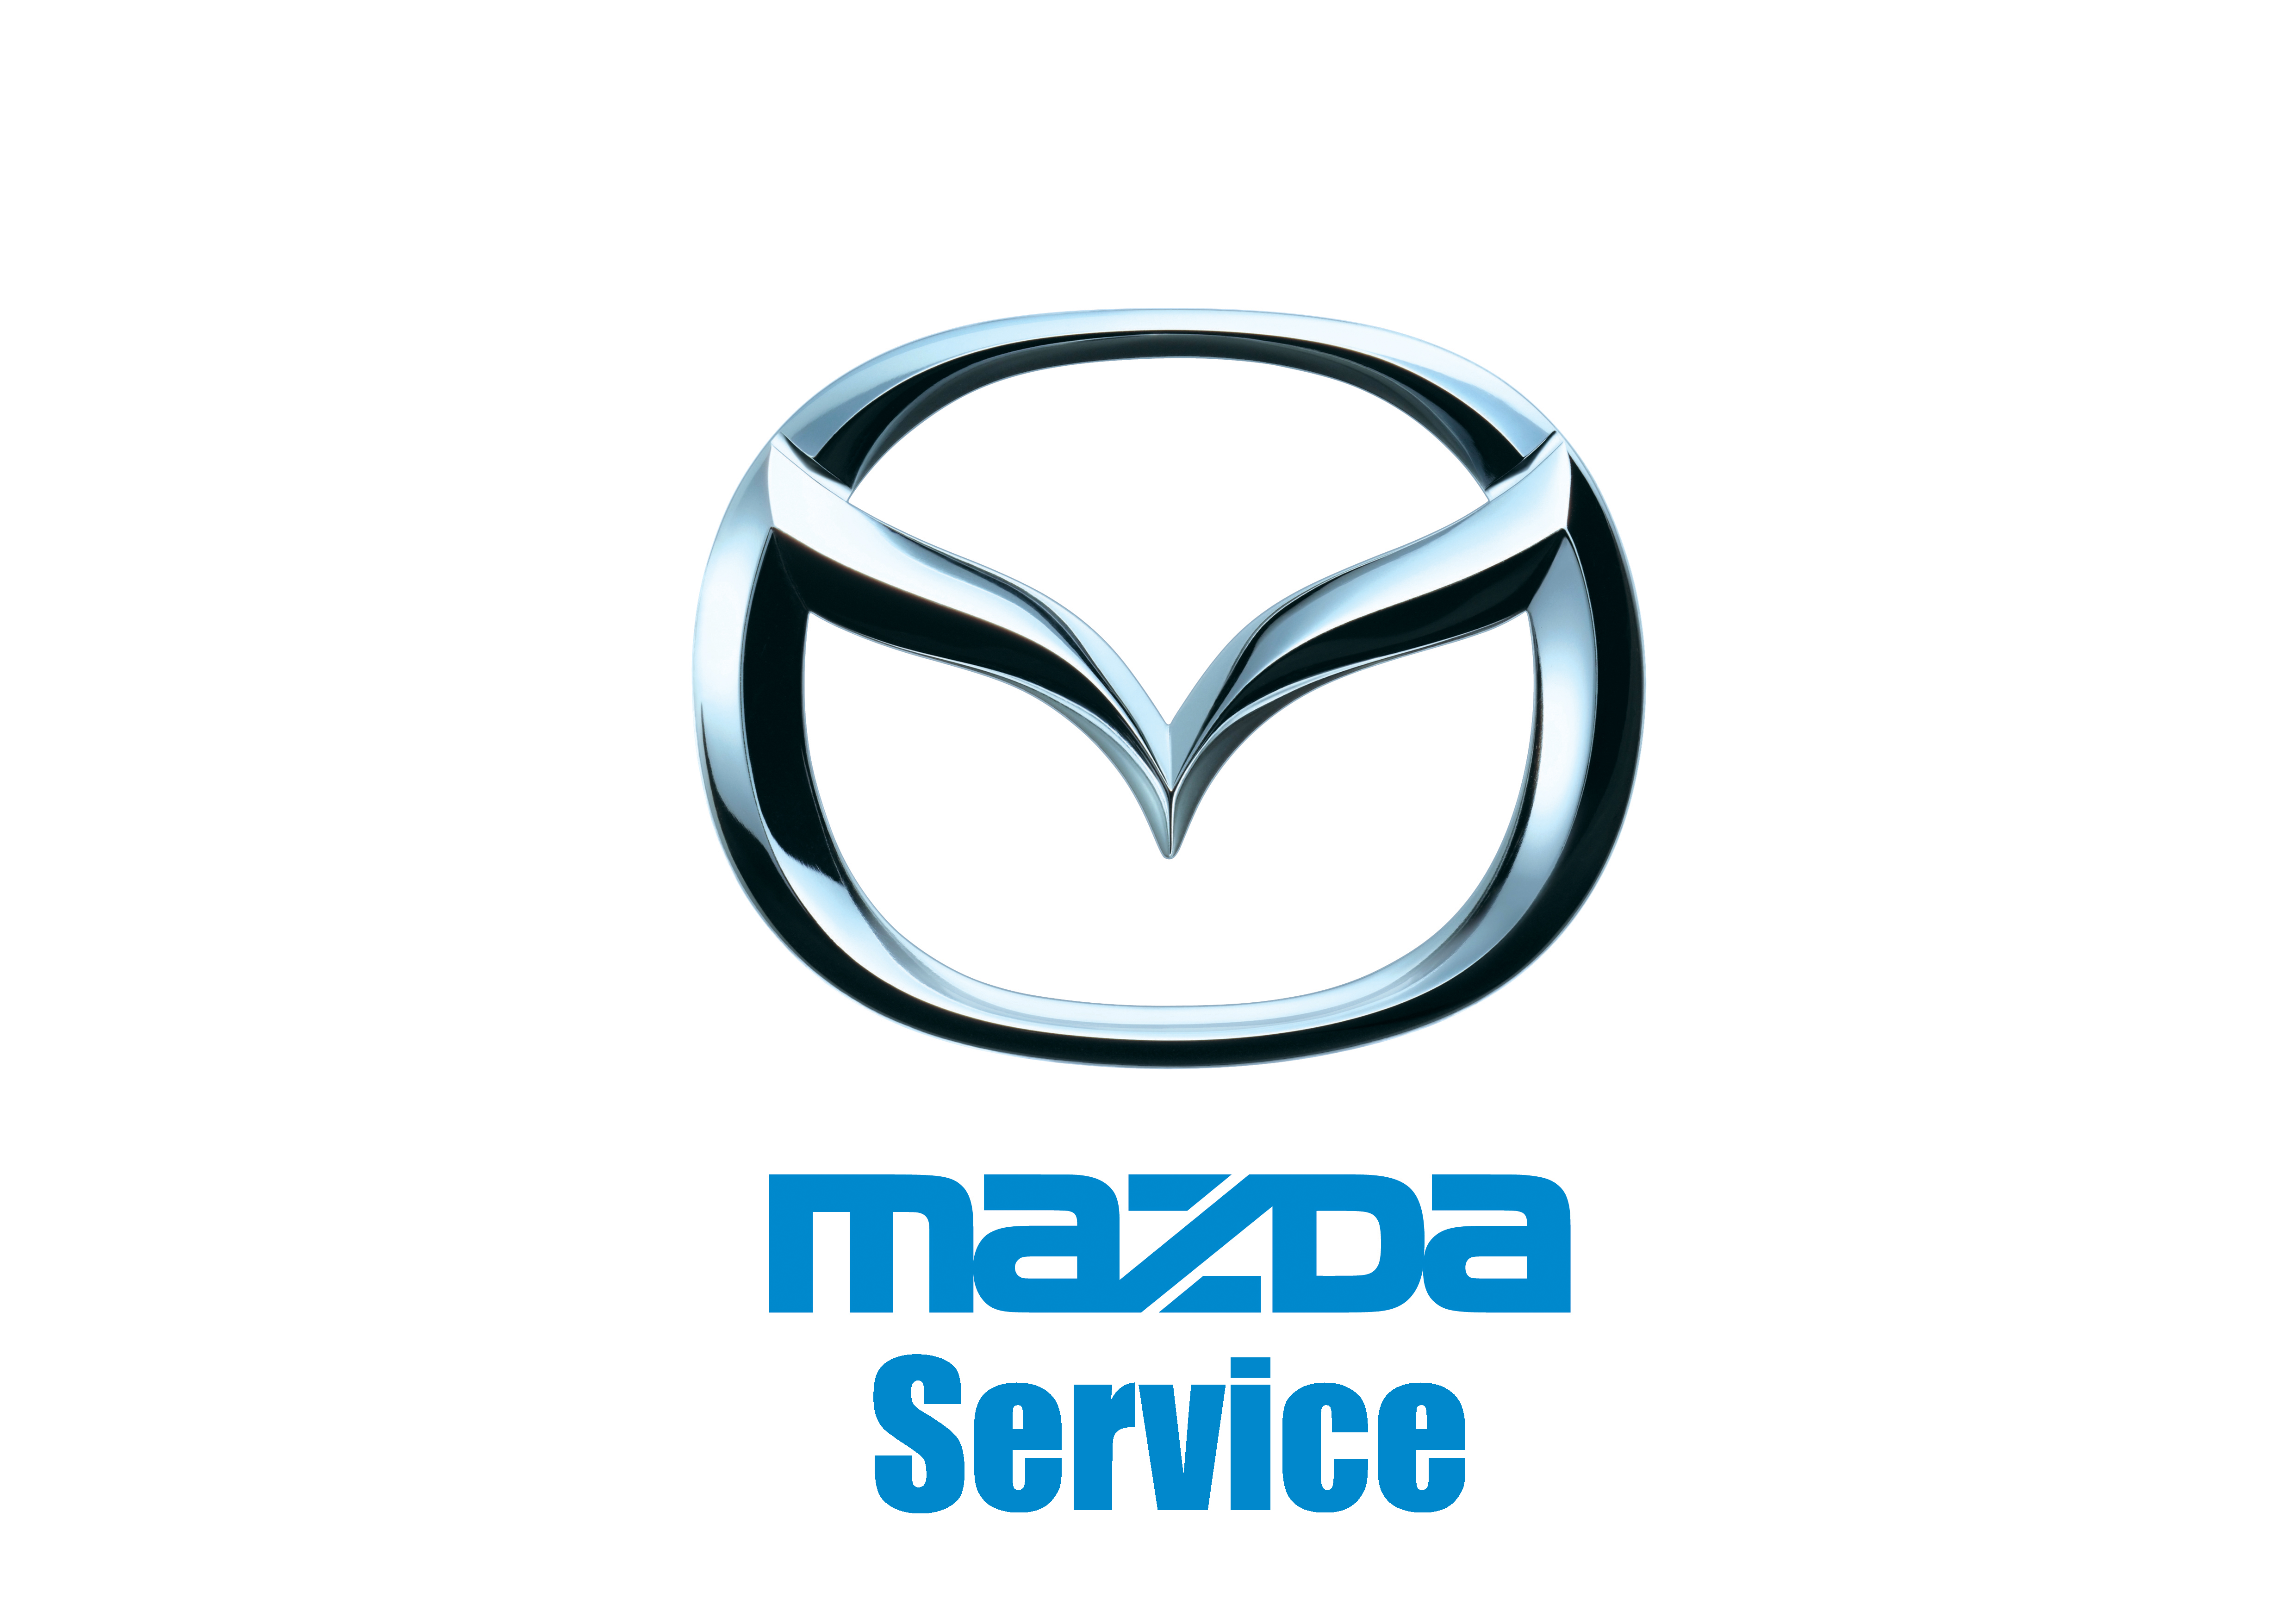 new s mazda she car news first lovin service it cindy view en city